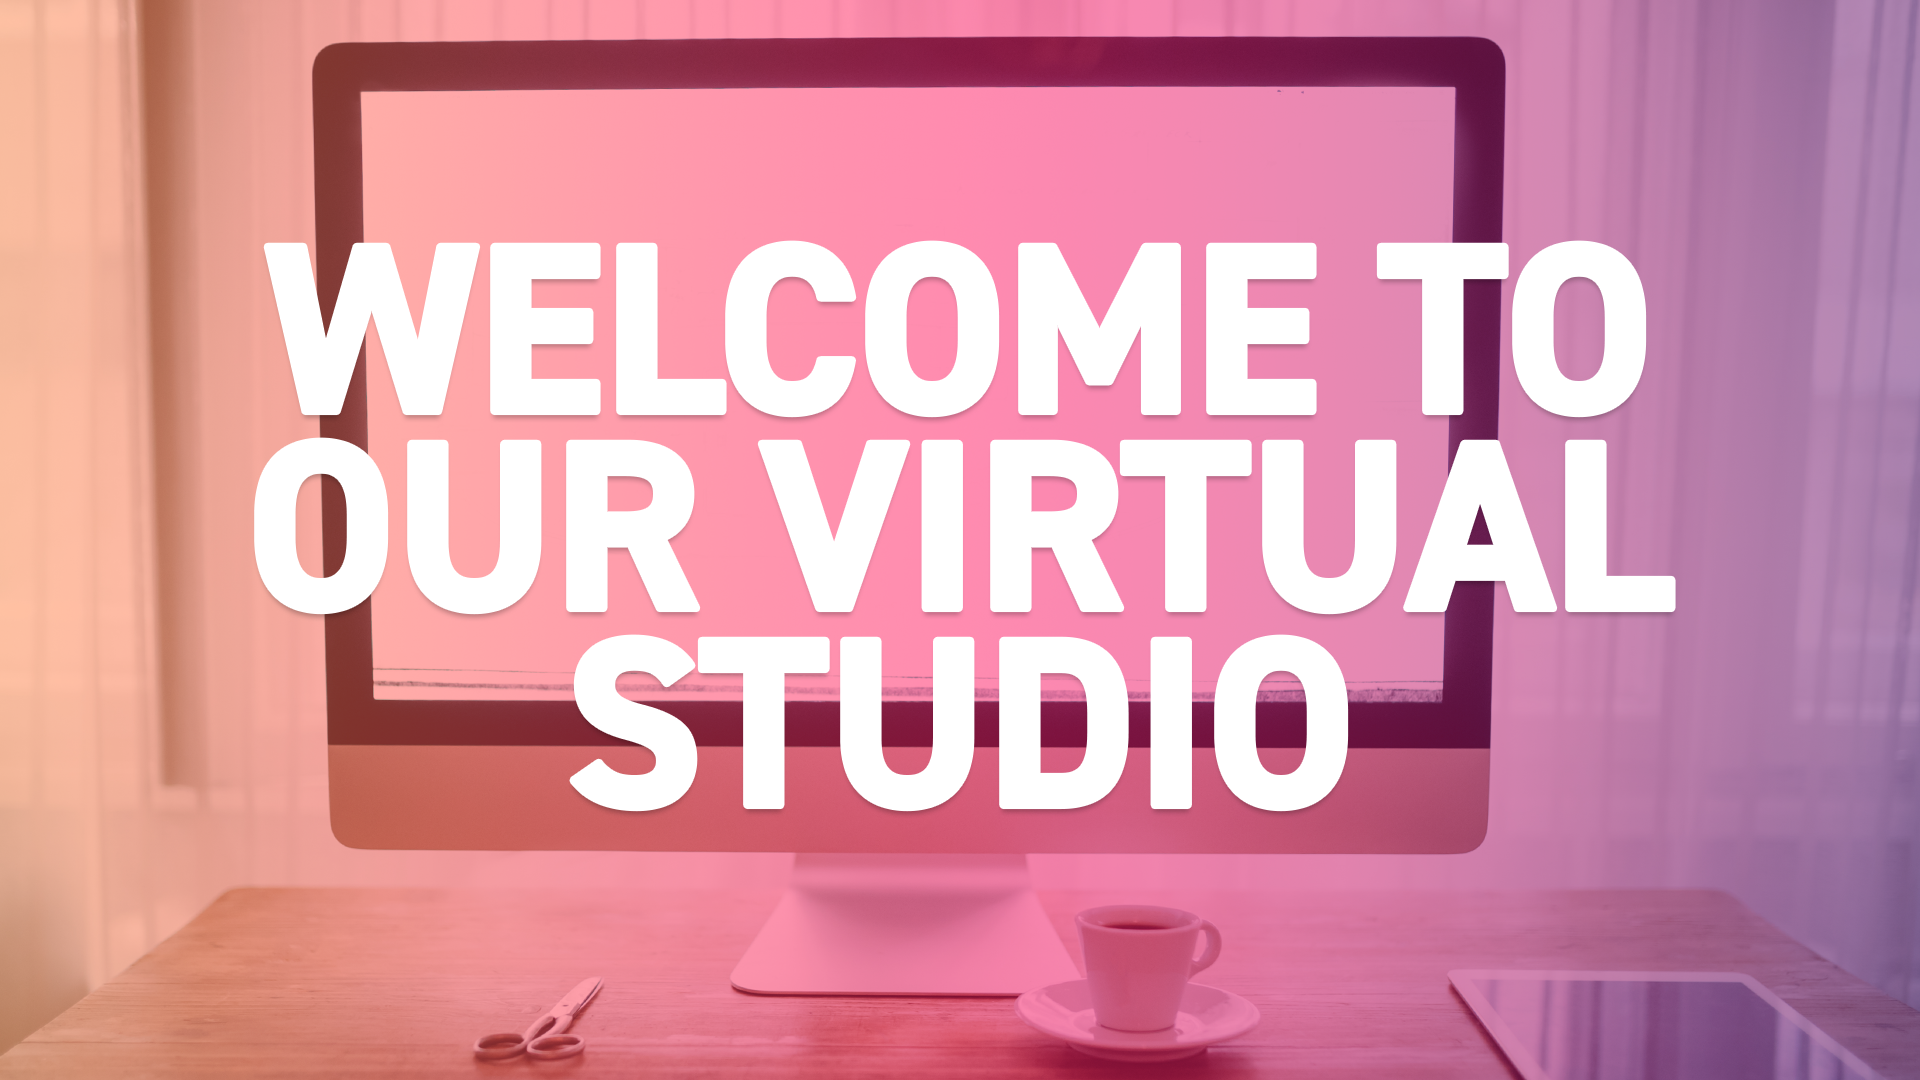 Welcome-to-our-virtual-studio-2